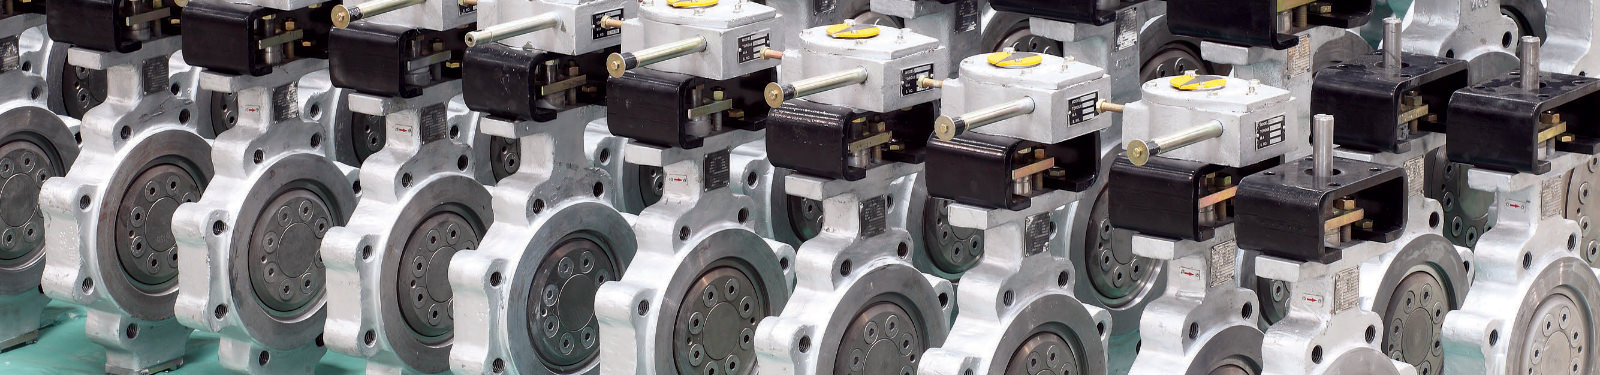 Pump Isolation Valves